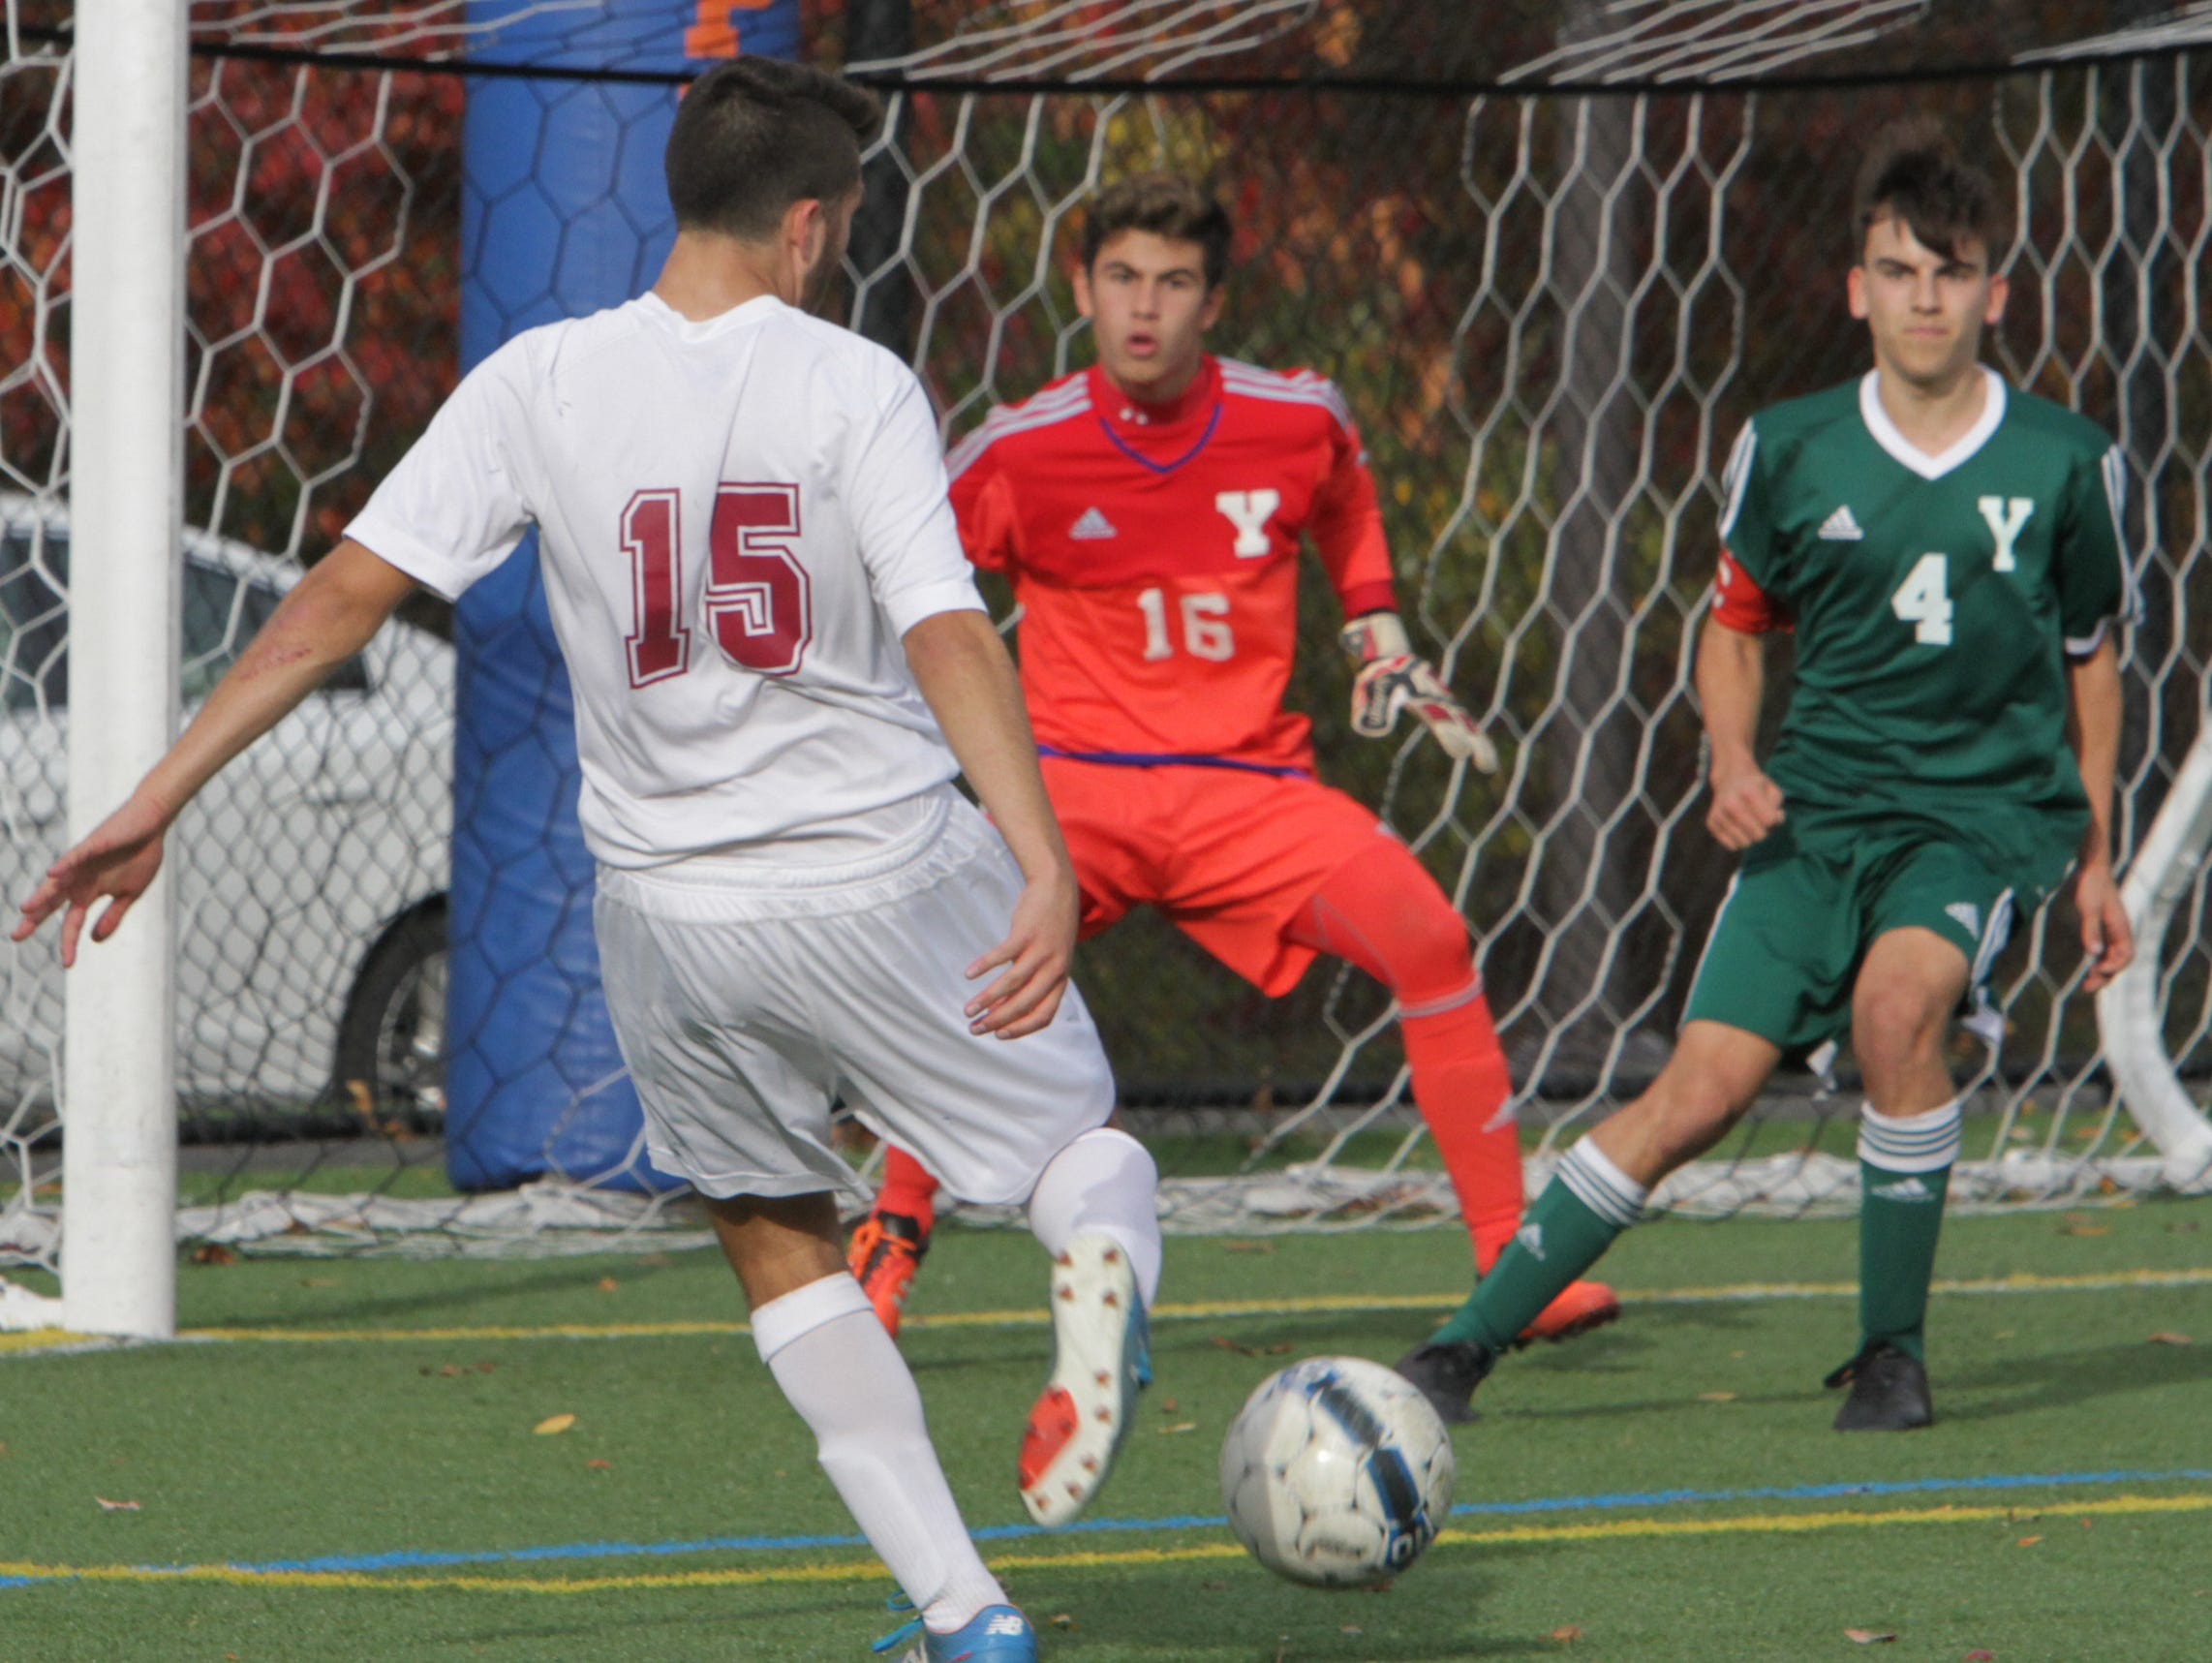 Yorktown defends against a shot by Tristan Elwes of Scarsdale during their Class AA boys soccer semifinal at Purchase College Oct. 29, 2105.